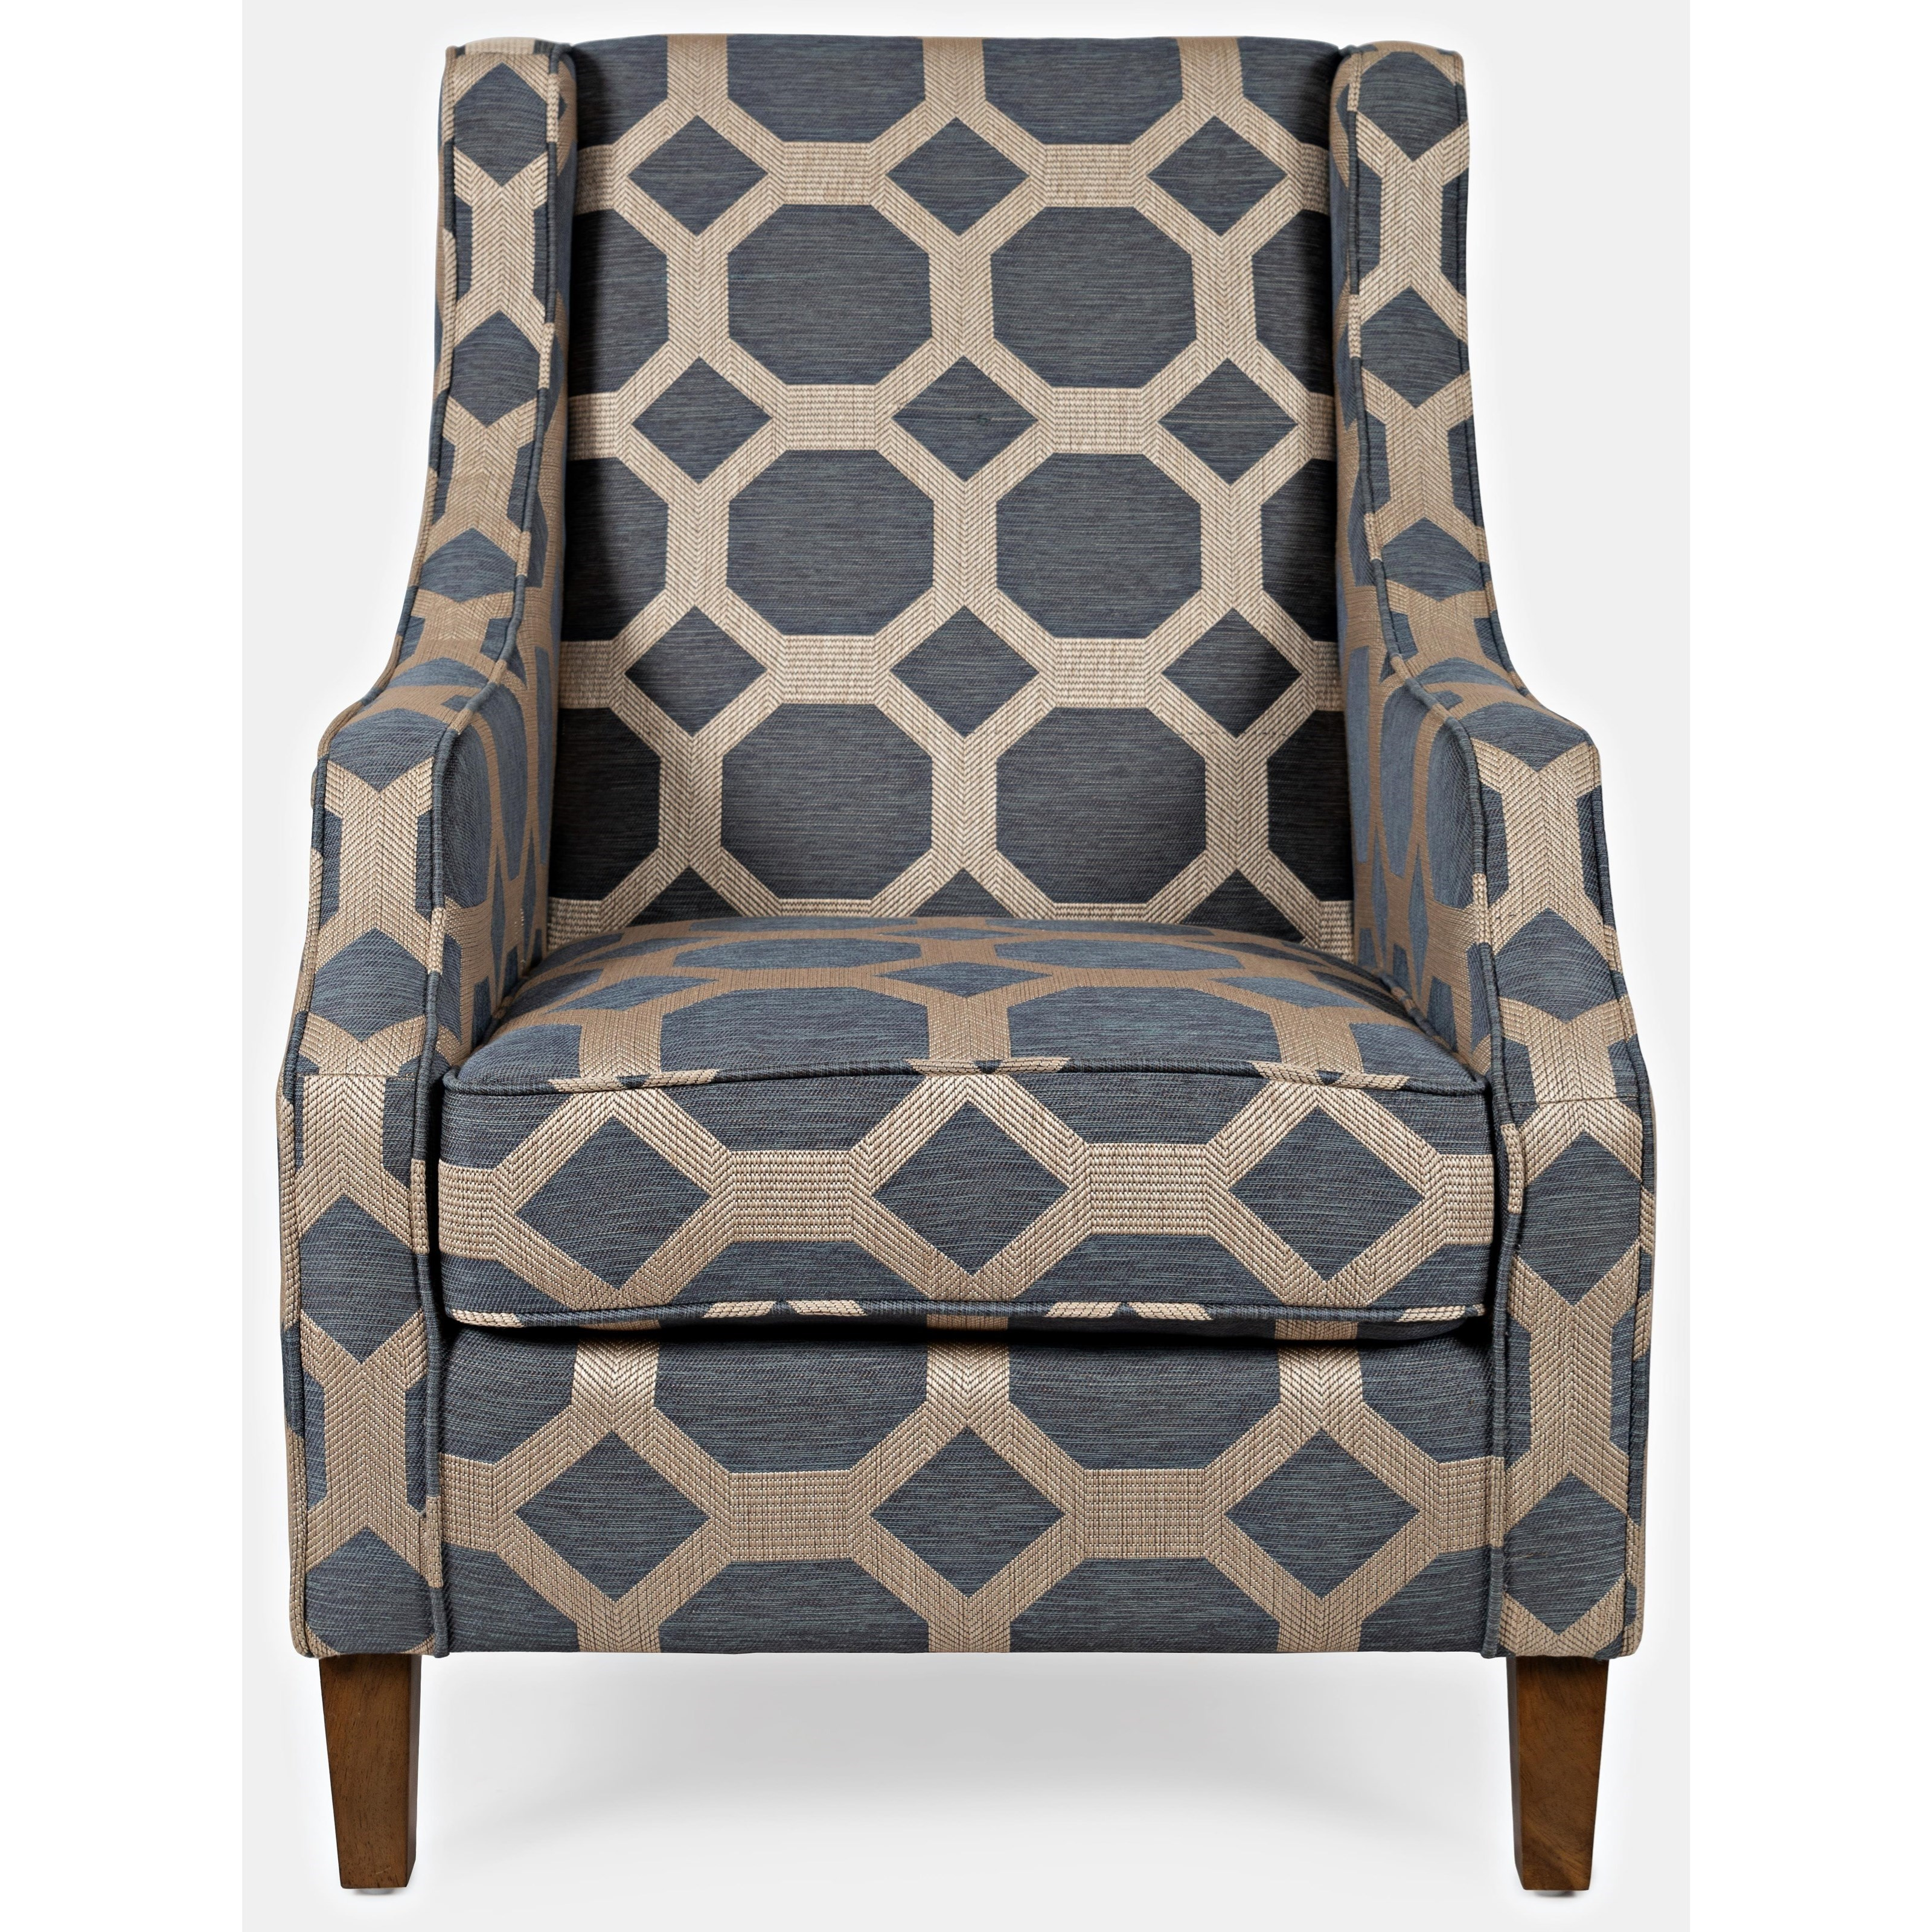 Accent Chairs Sanders Chair by Jofran at Jofran